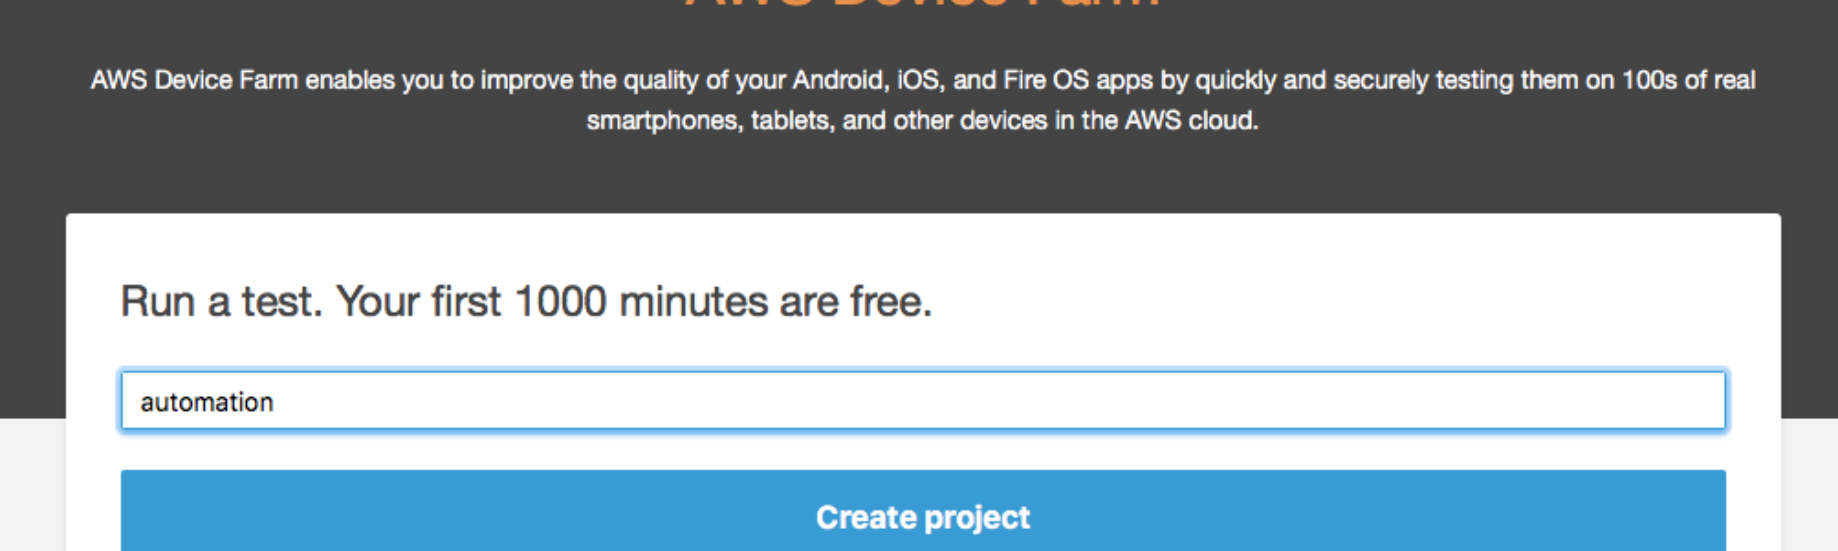 Running Automation Tests on AWS Device Farm using Appium and